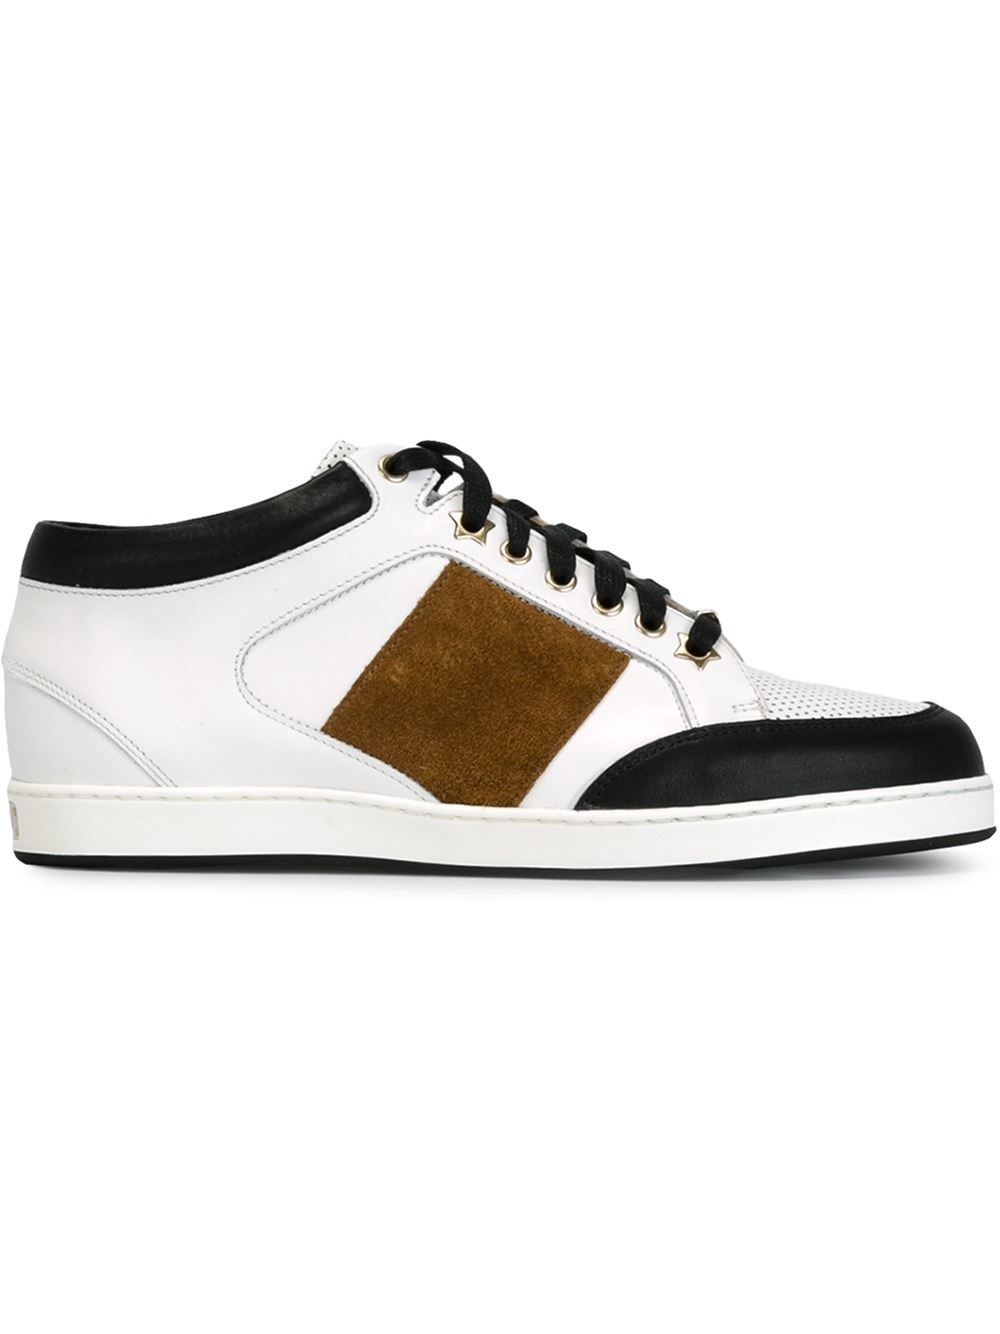 jimmy choo 39 miami 39 sneakers in white lyst. Black Bedroom Furniture Sets. Home Design Ideas